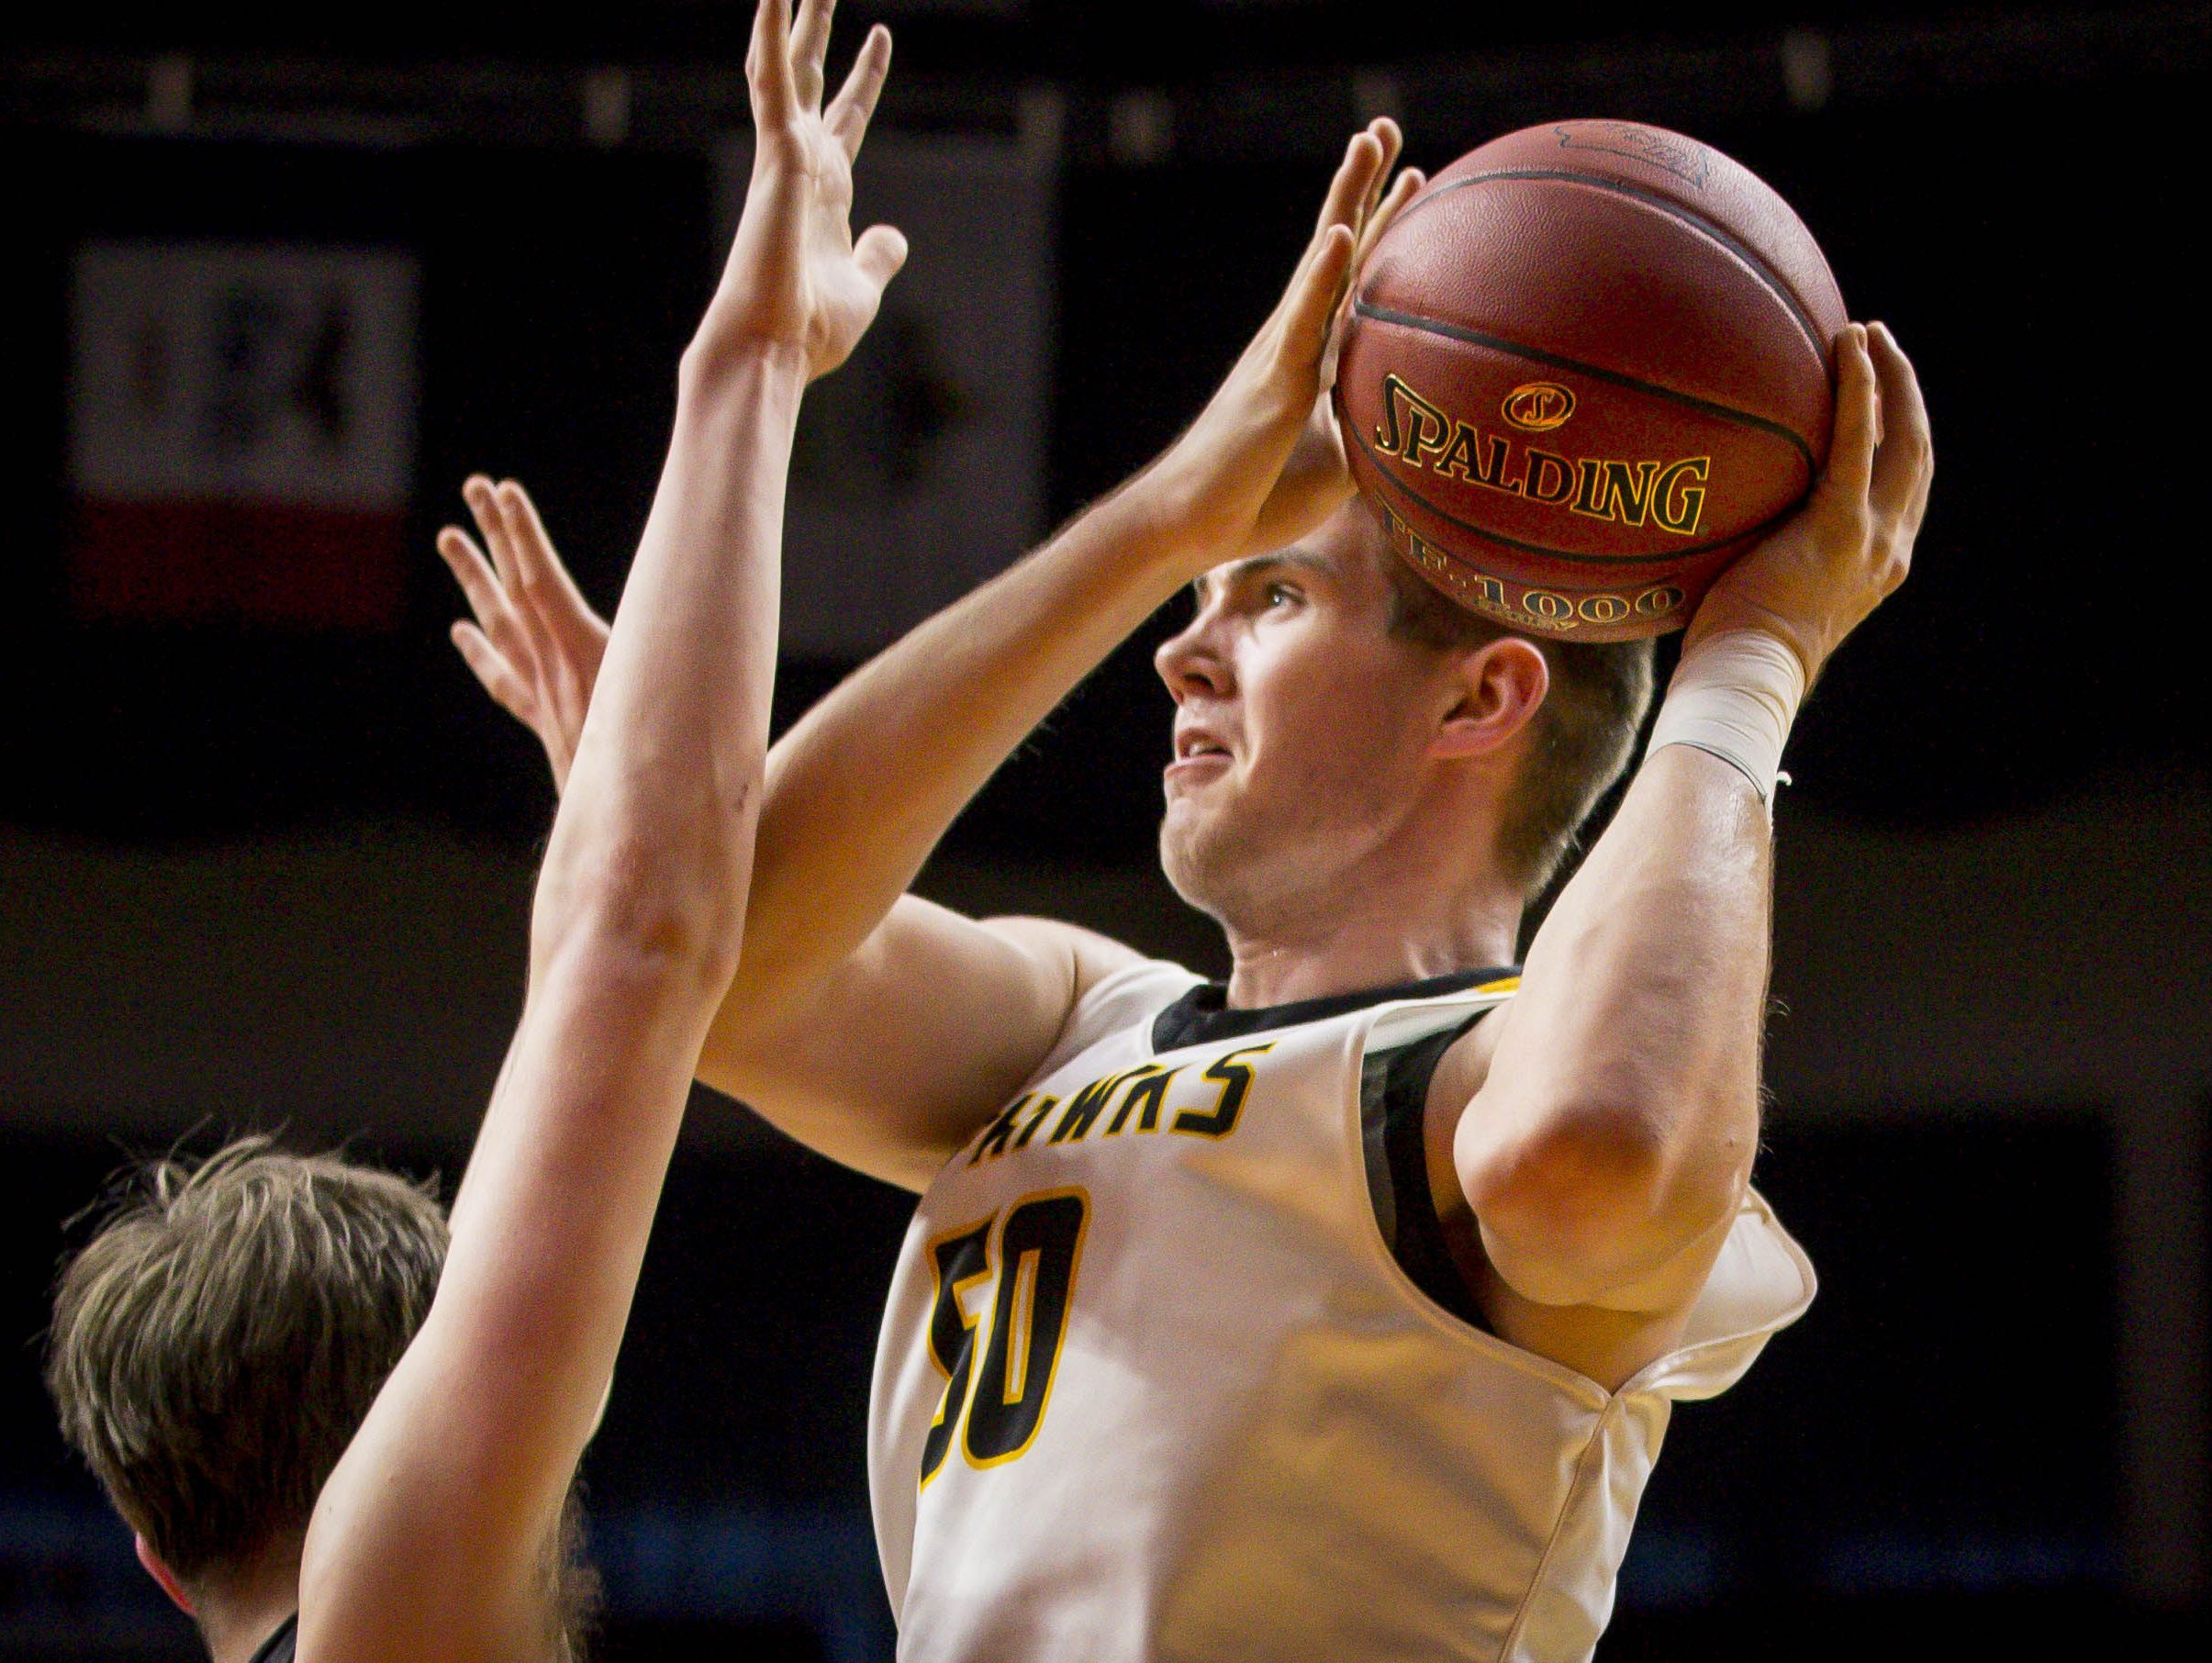 Waverly-Shell Rock's (50) Austin Phyfe shoots over an Atlantic defender during their 3A quarterfinal matchup at the Iowa boys' state basketball tournament at Wells Fargo Arena Tuesday March 7, 2017, in Des Moines, Iowa.